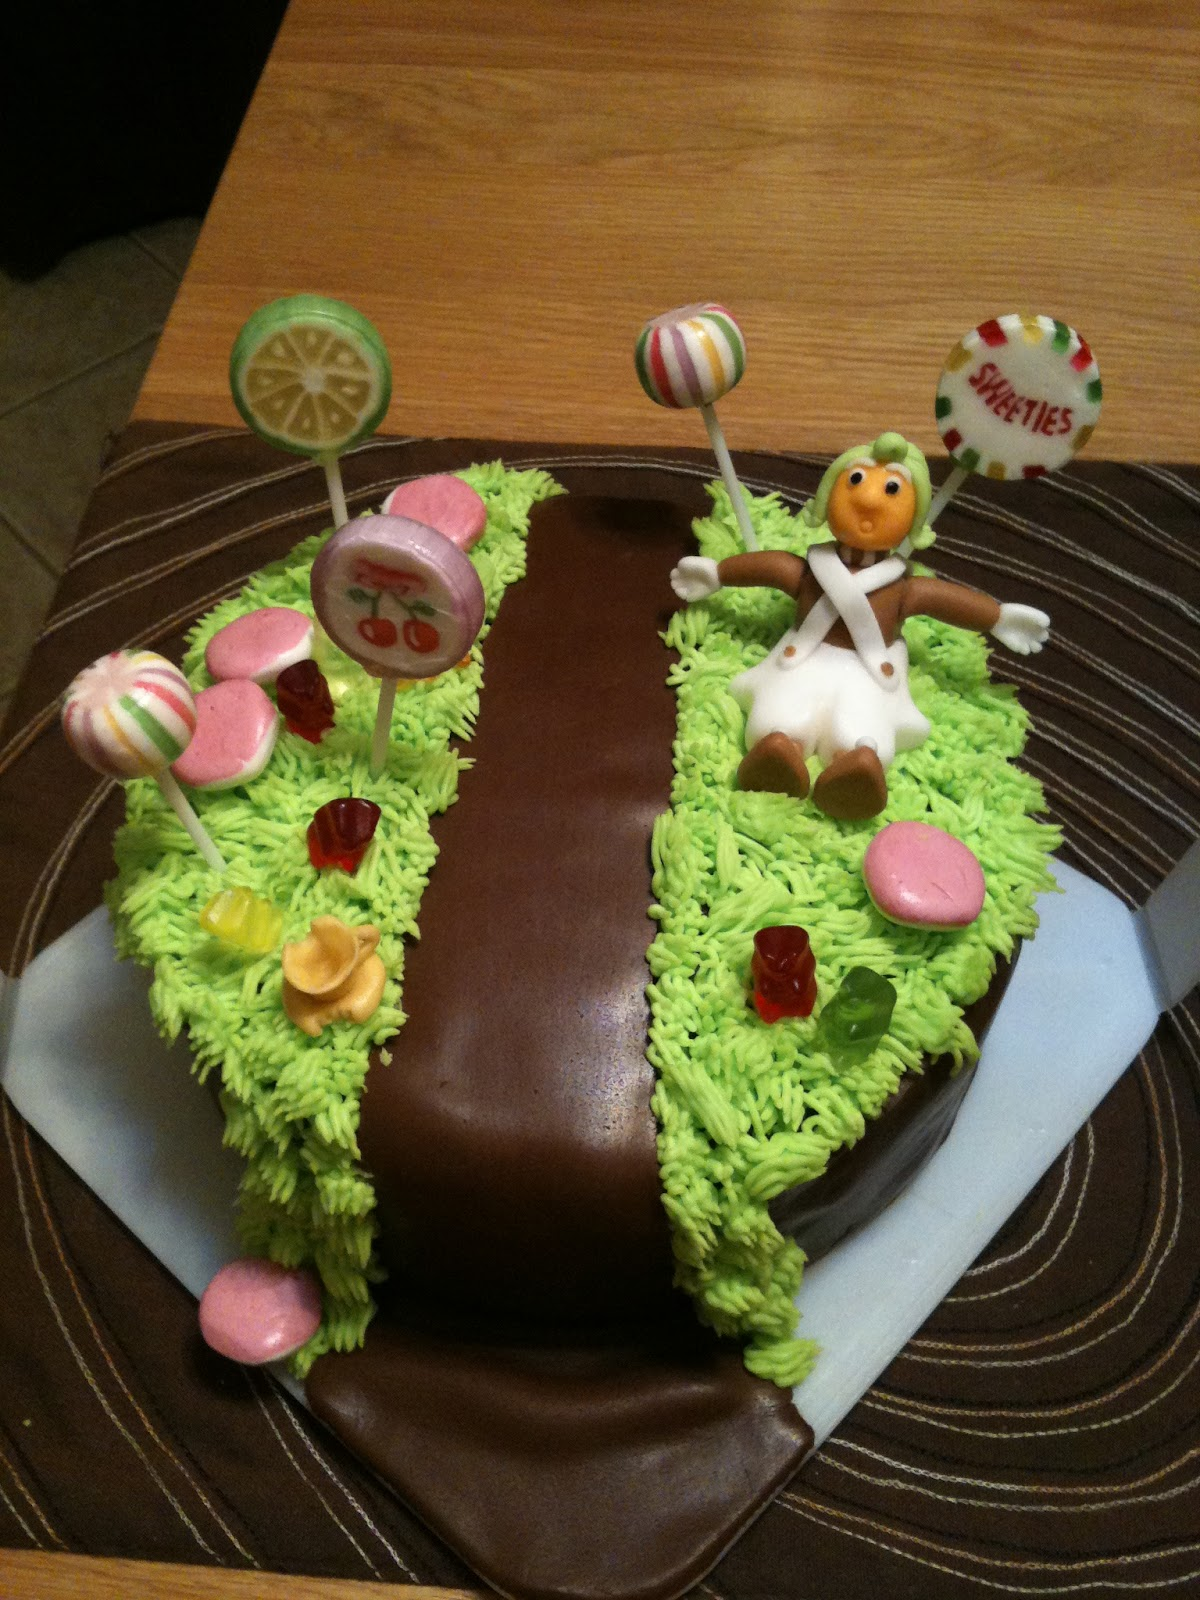 burp charlie burp it s the only way the cake escape based on the scene where willy wonka sings pure imagination this cake includes the chocolate river lolly pop trees mushrooms gummy bears and a little